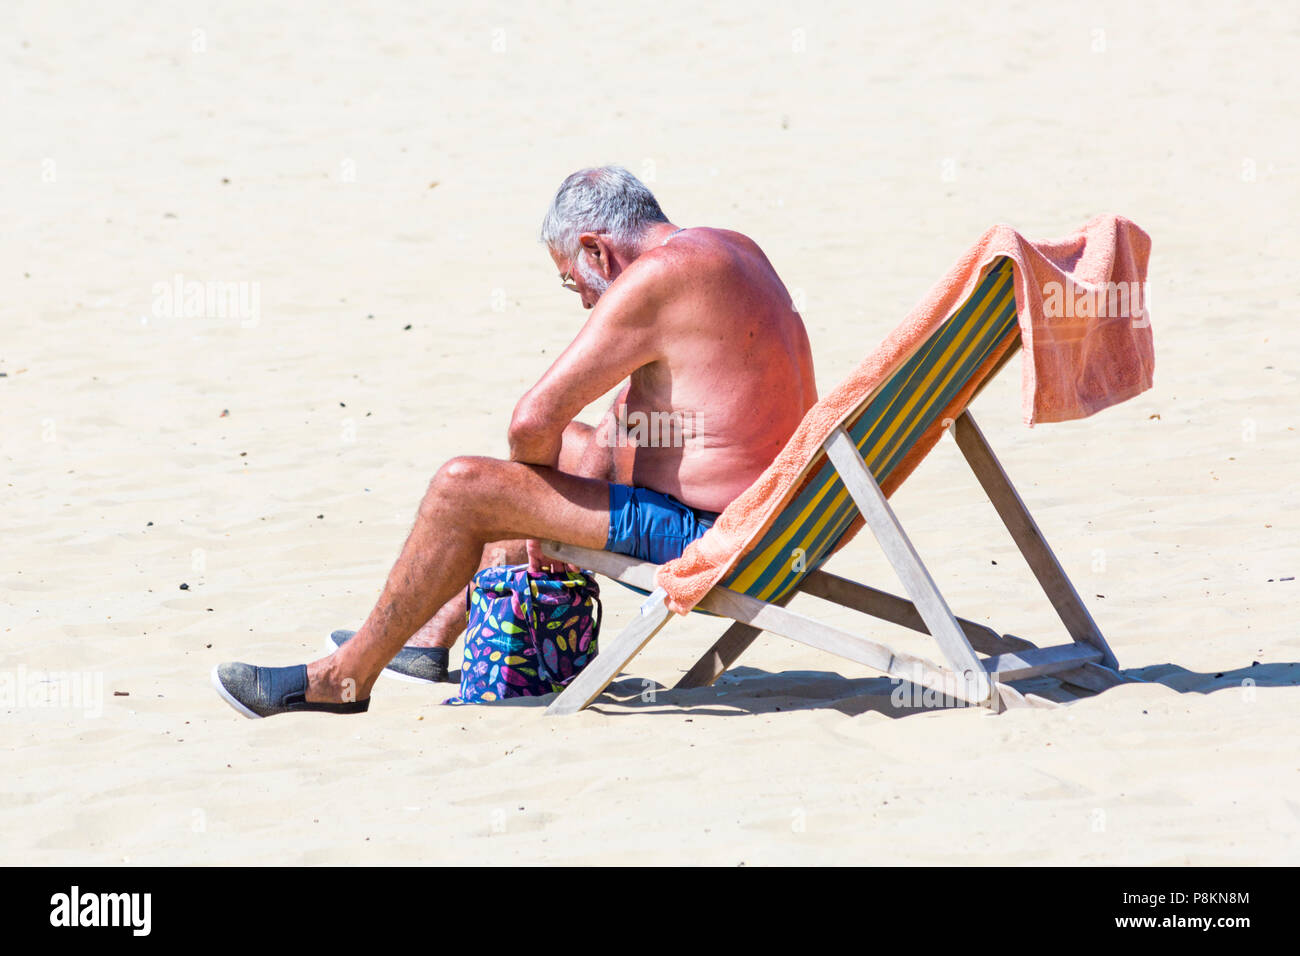 Bournemouth, Dorset, UK. 12th July 2018. UK weather: still no rain at Bournemouth! The heatwave continues with another hot sunny day, as sunseekers make the most of the glorious weather and head to the seaside at Bournemouth beaches. Credit: Carolyn Jenkins/Alamy Live News - Stock Image